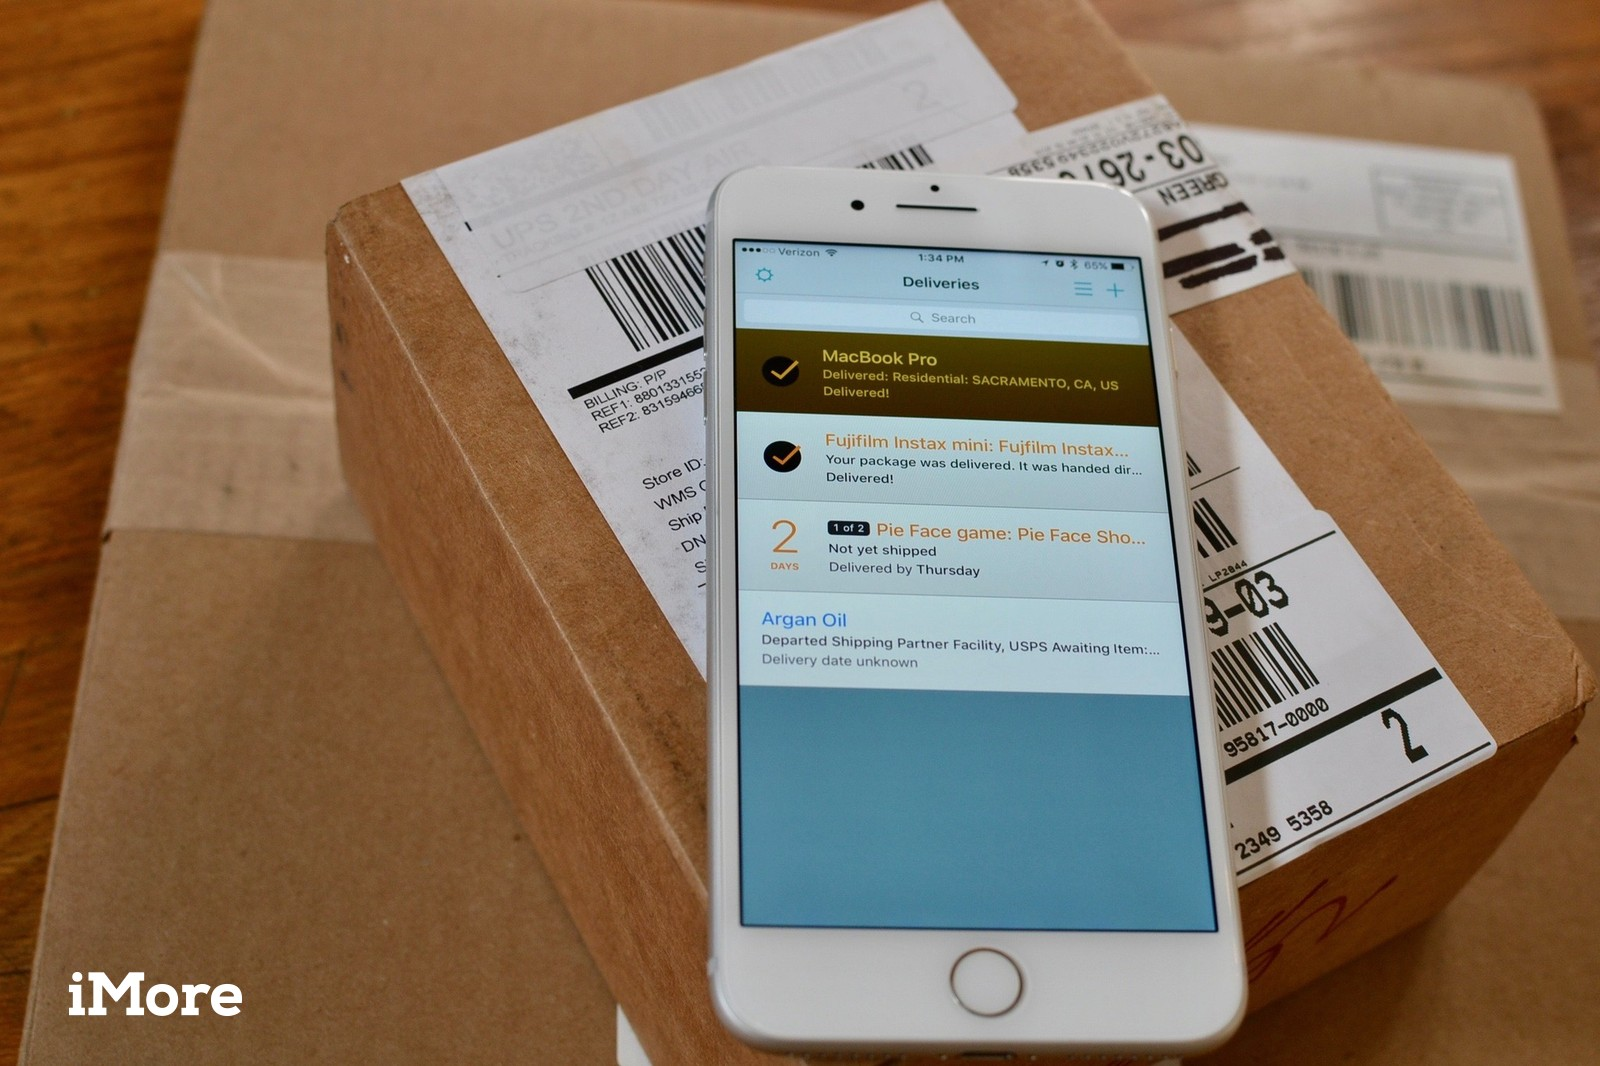 Package Tracking on the iPhone